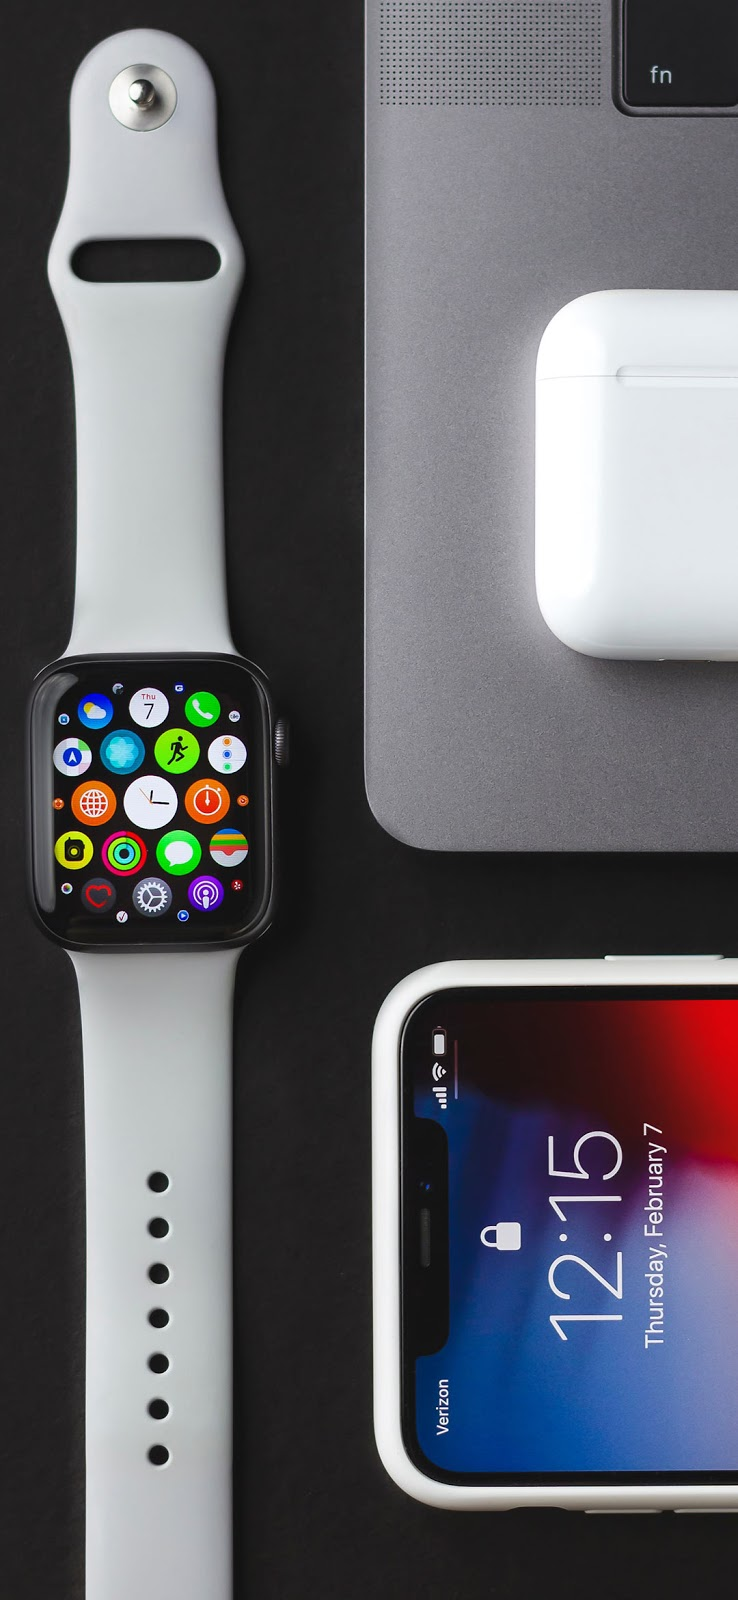 cool apple tech products wallpaper